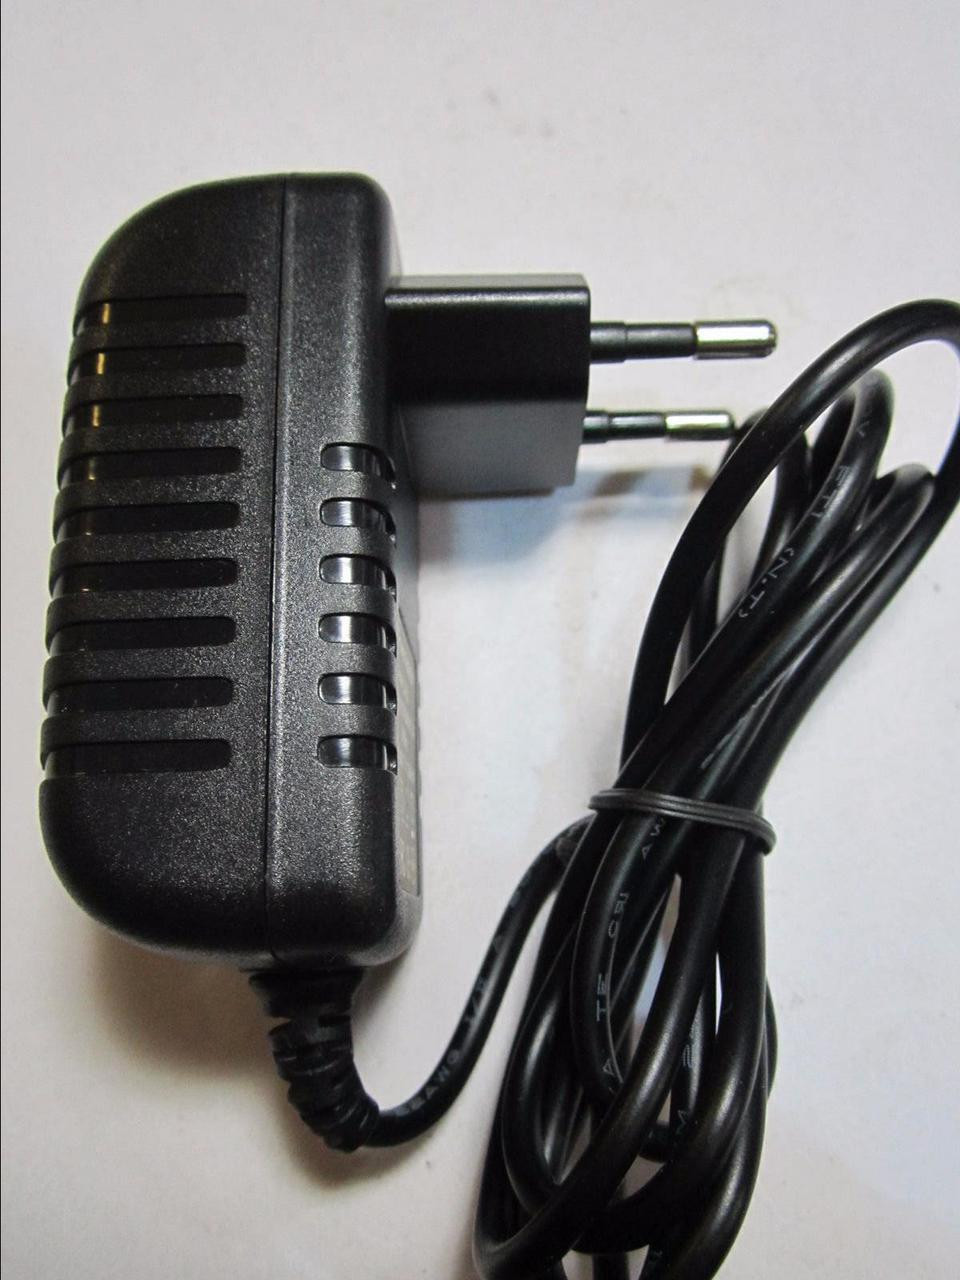 EU 5 0V 2 4A AC-DC Switching Adapter Charger for Polaroid MID1047PME01  Tablet PC